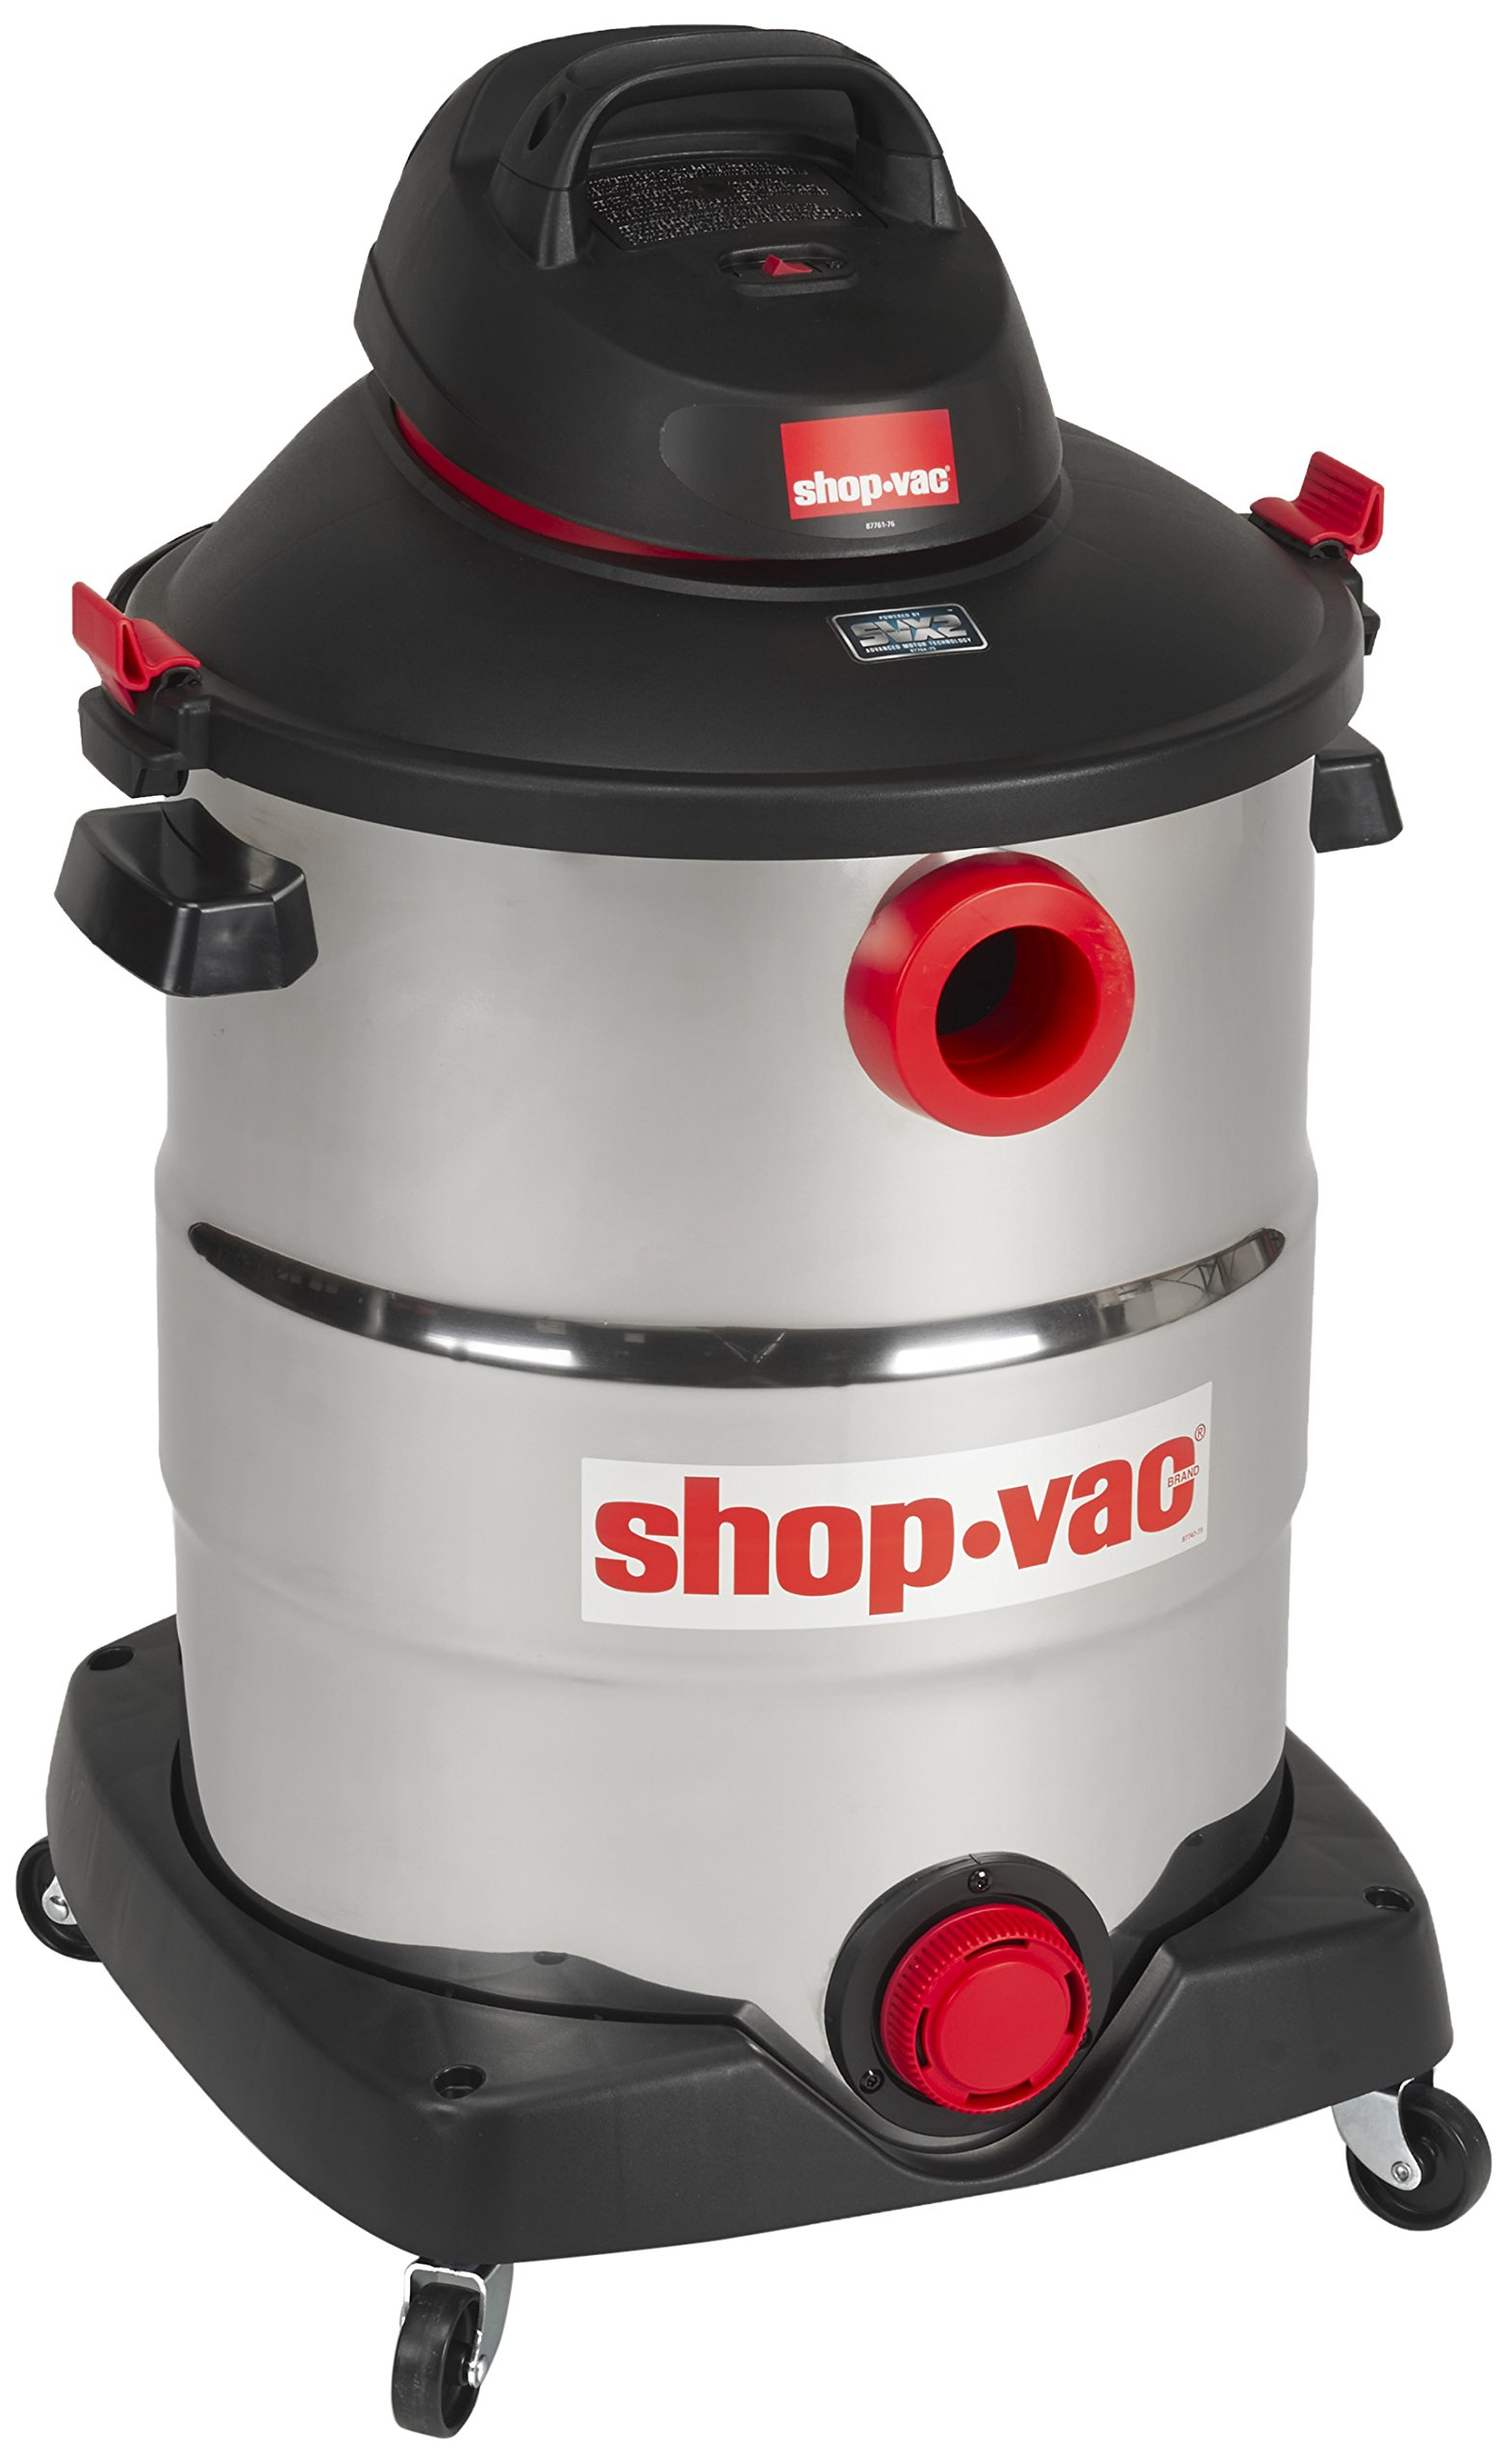 Shop-Vac 5989600 16 gallon 6.5 Peak HP Stainless Wet Dry Vacuum, Black by Shop-Vac